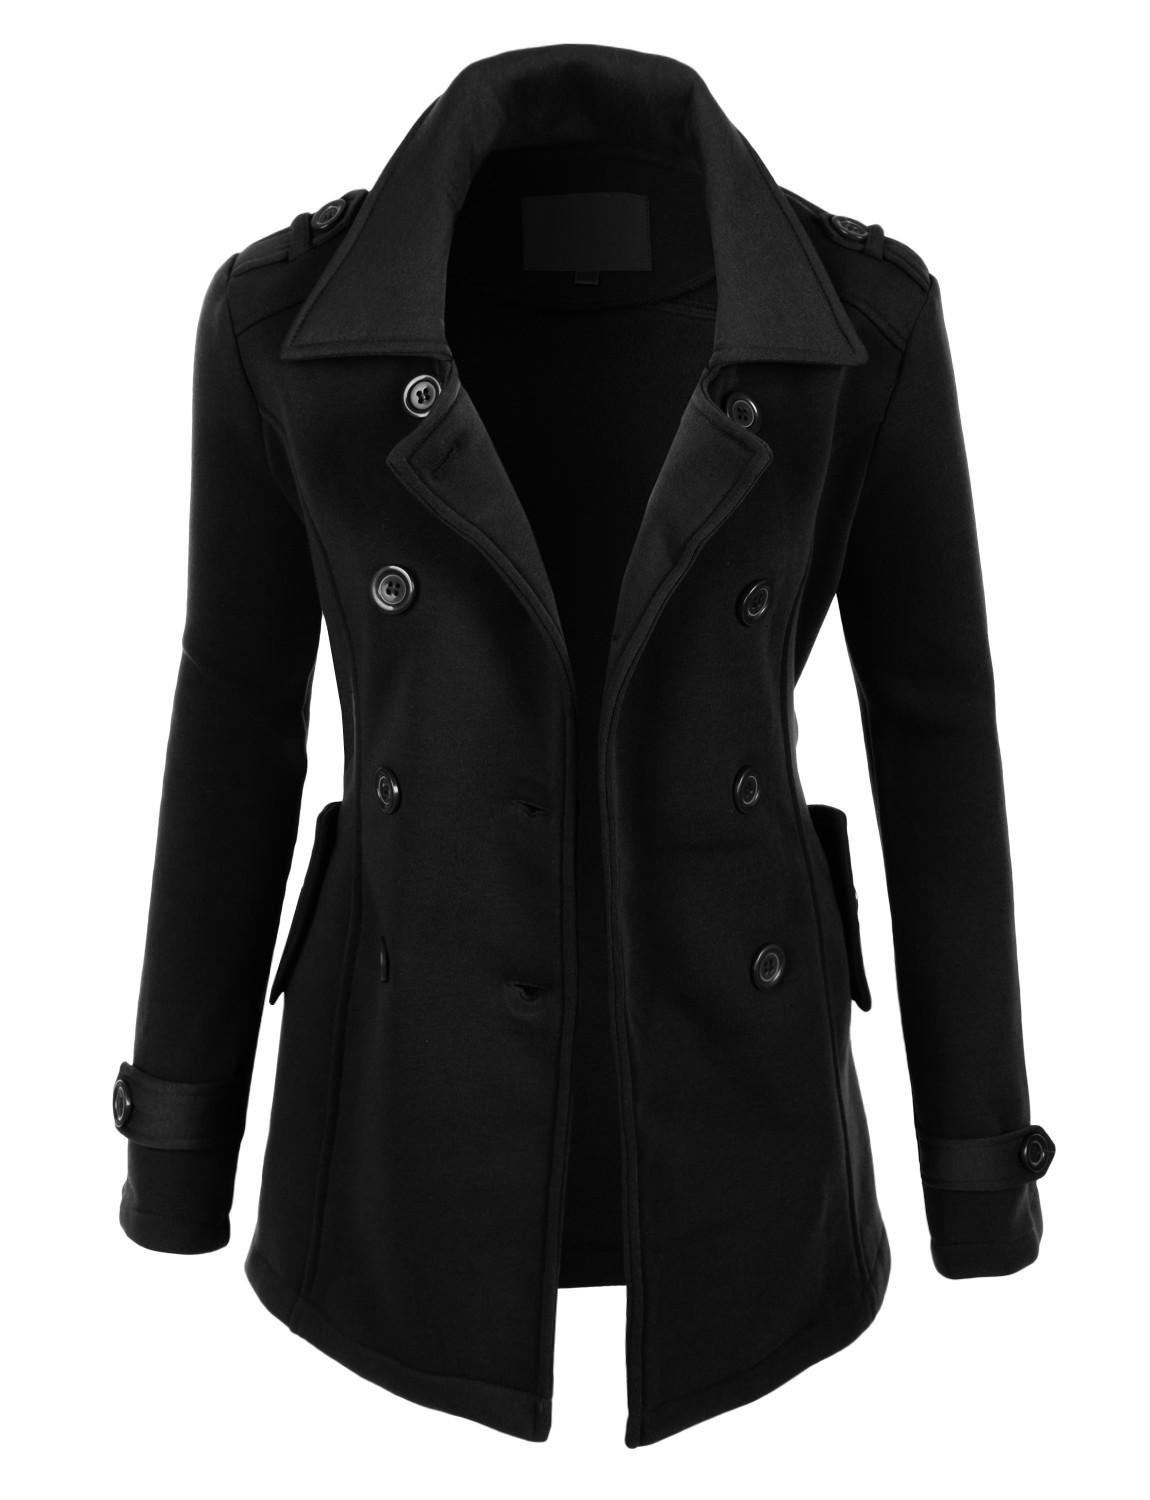 Image of LE3NO Womens Classic Double Breasted Pea Coat Jacket with Pockets